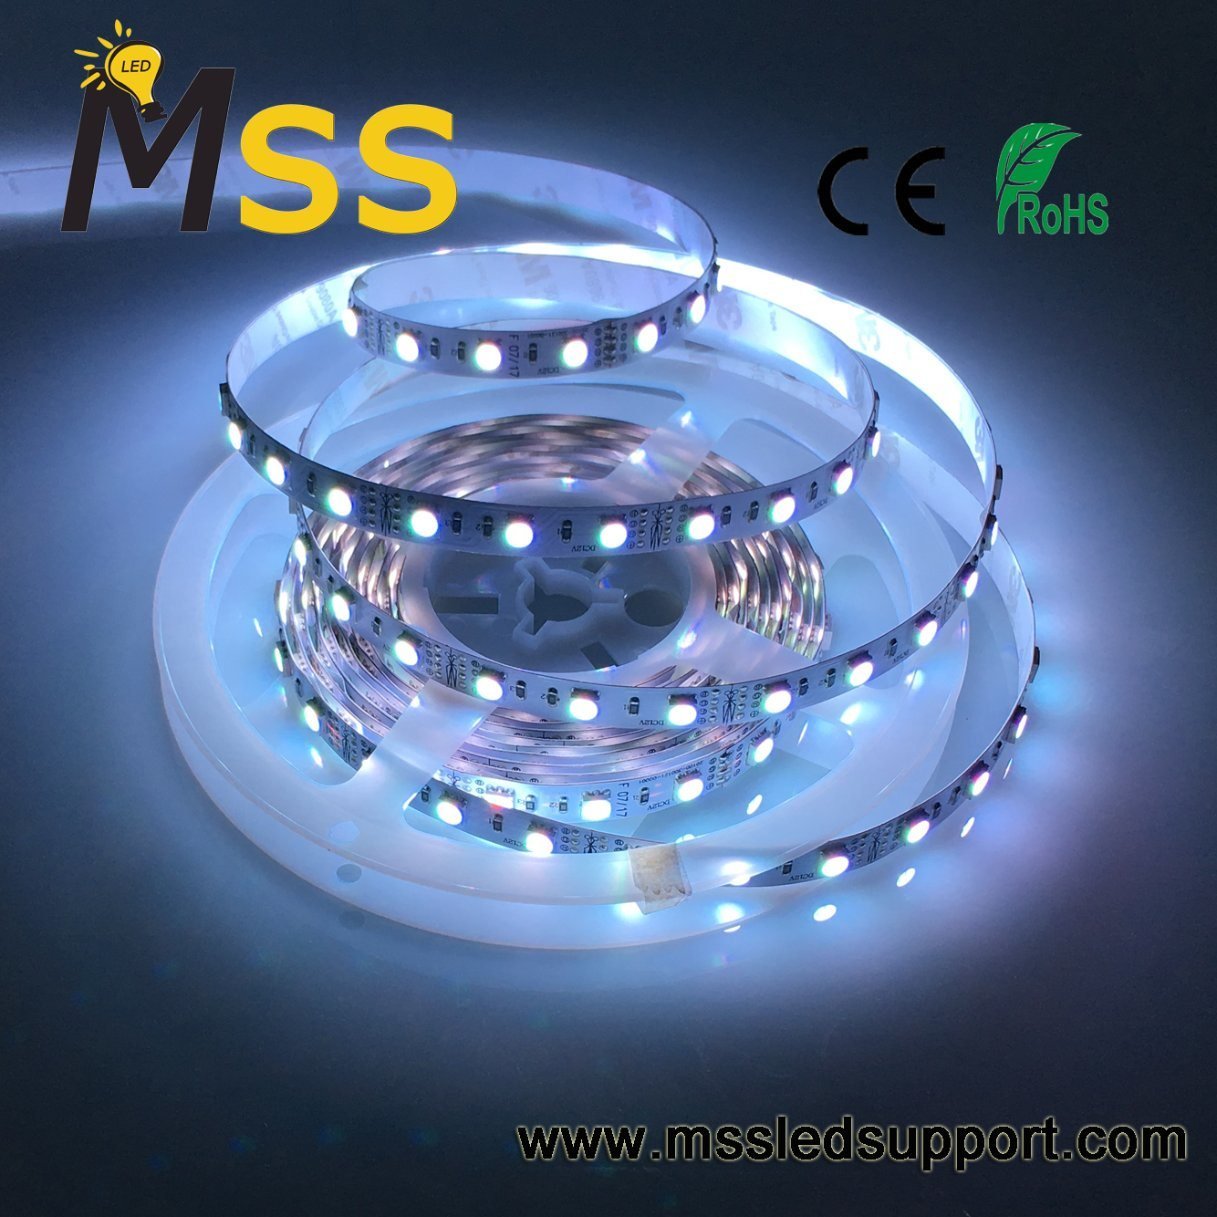 Led Light Strips Rgb Hot Item Smd 5050 2835 3528 Rgb Led Light Strip With 3 5 Year Warranty